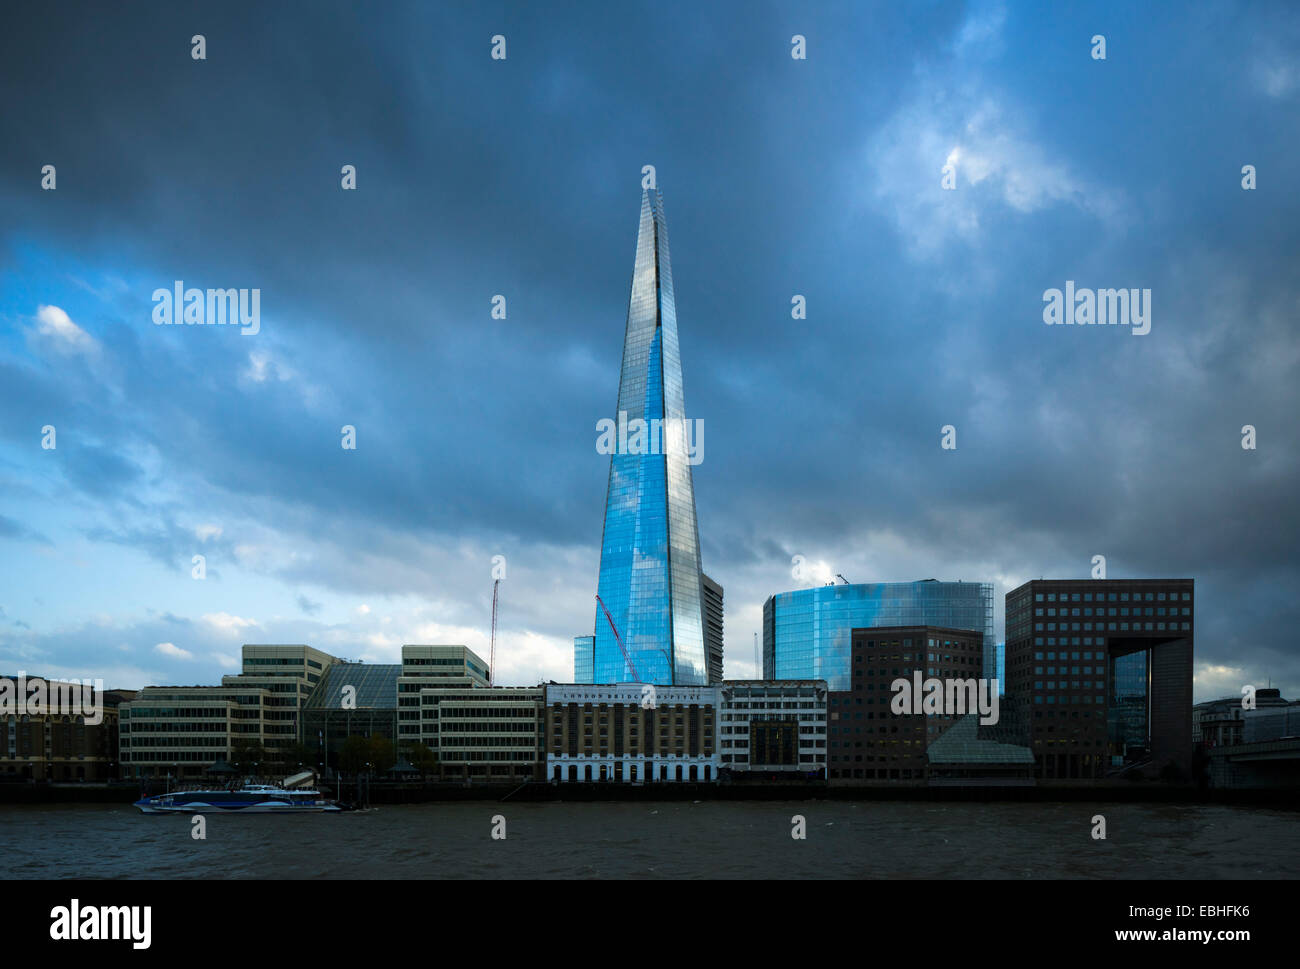 The Shard, London, England, UK - Stock Image